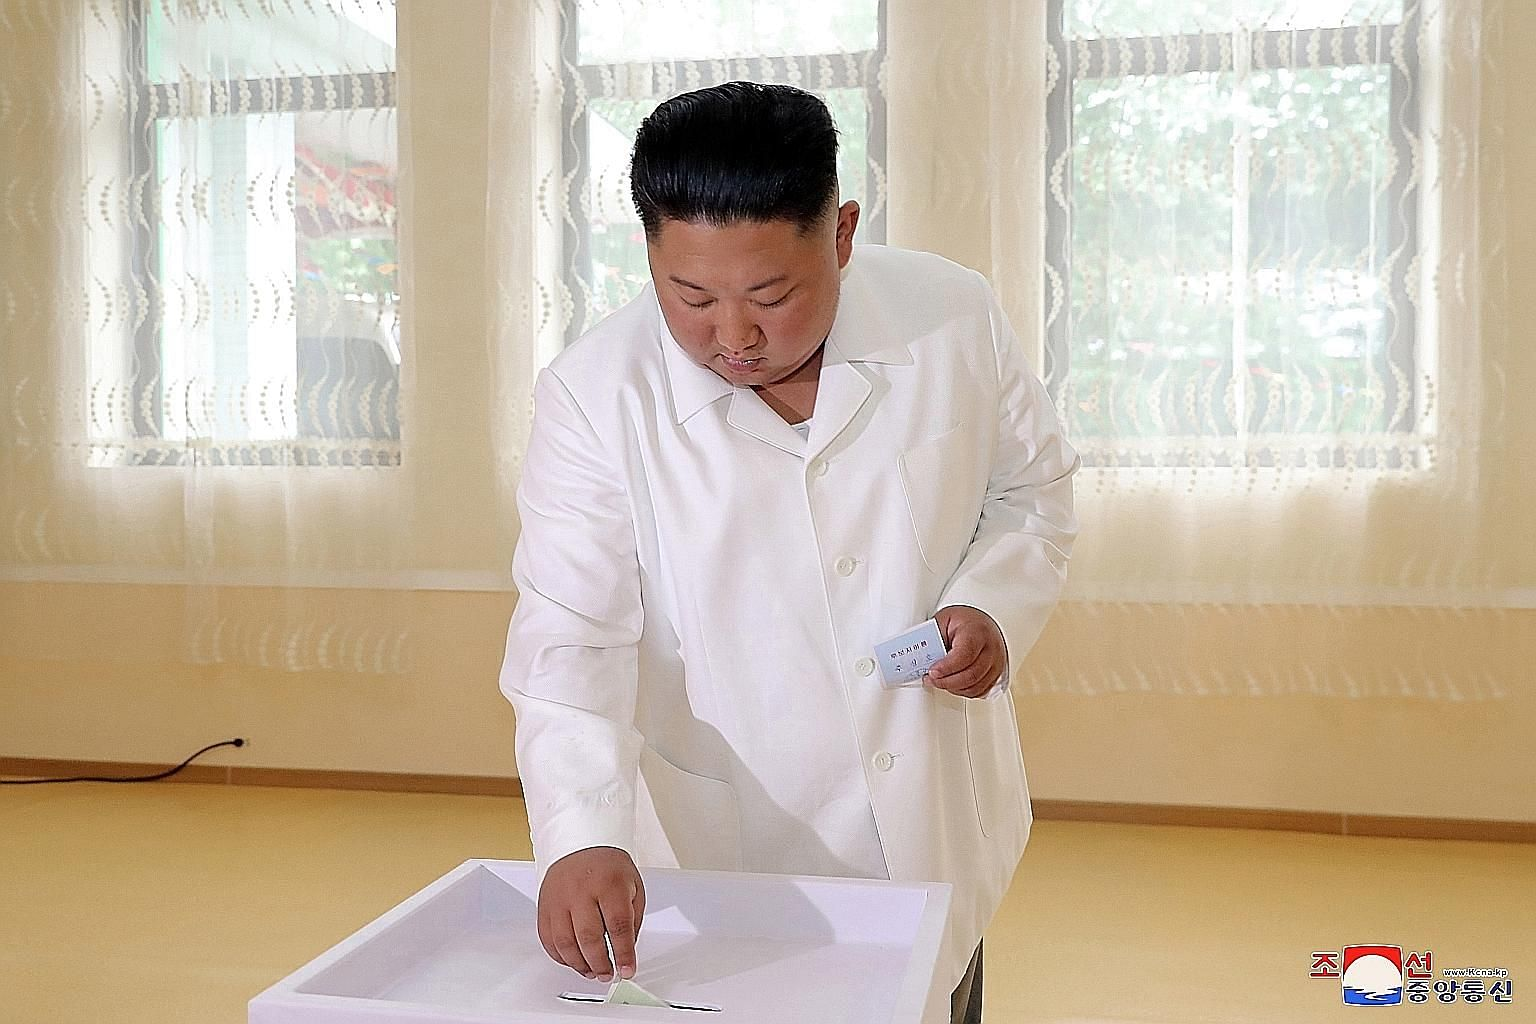 North Korean leader Kim Jong Un voting in North Hamgyong province on Sunday for two candidates running for seats in the area's county assemblies. PHOTO: EPA-EFE